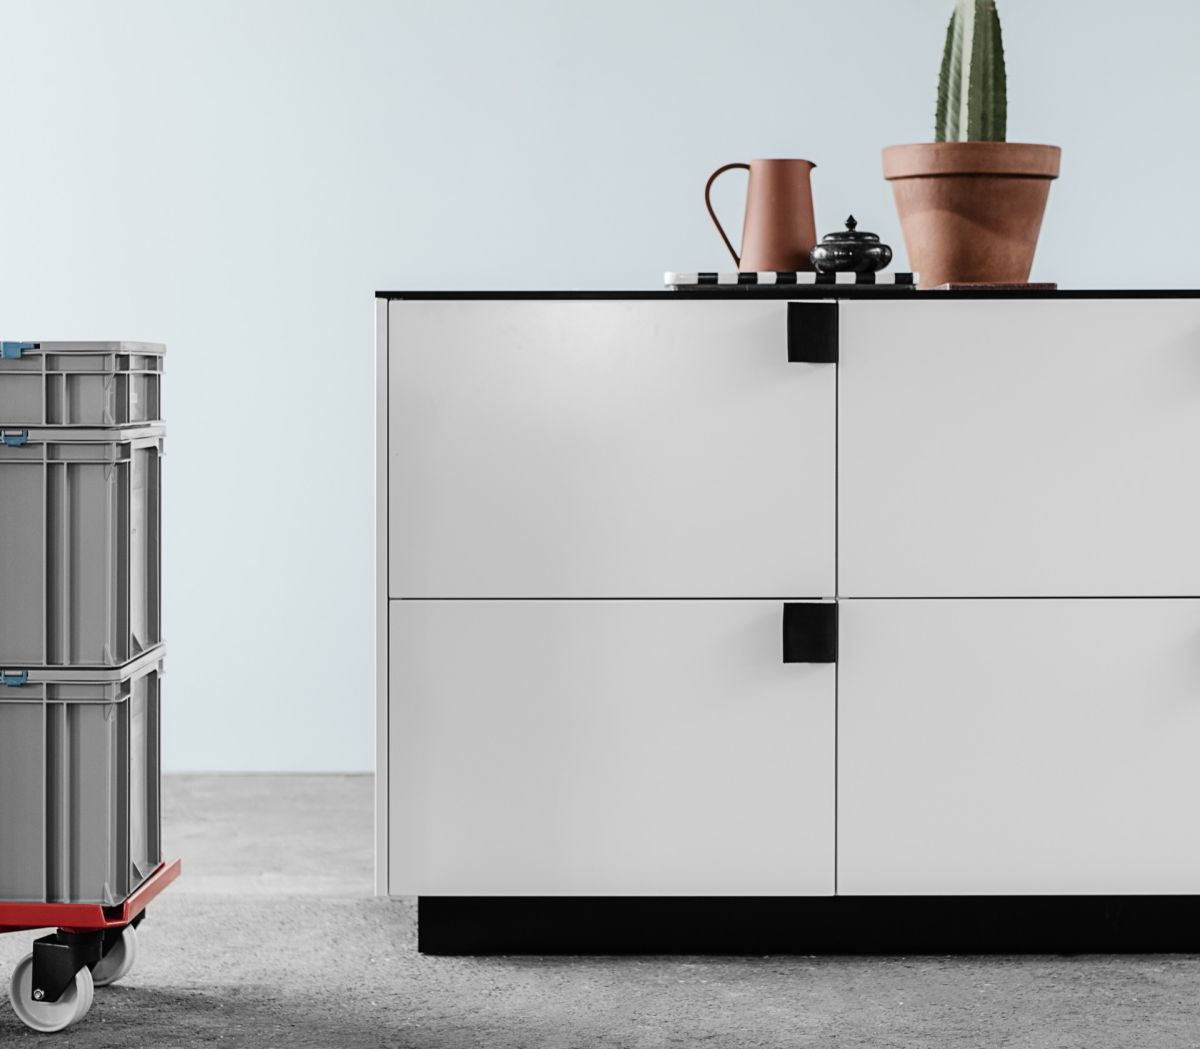 Alternatief Voor Ikea Keuken Design Van De Week Ikea Keuken Upgrade Door Big De Architect